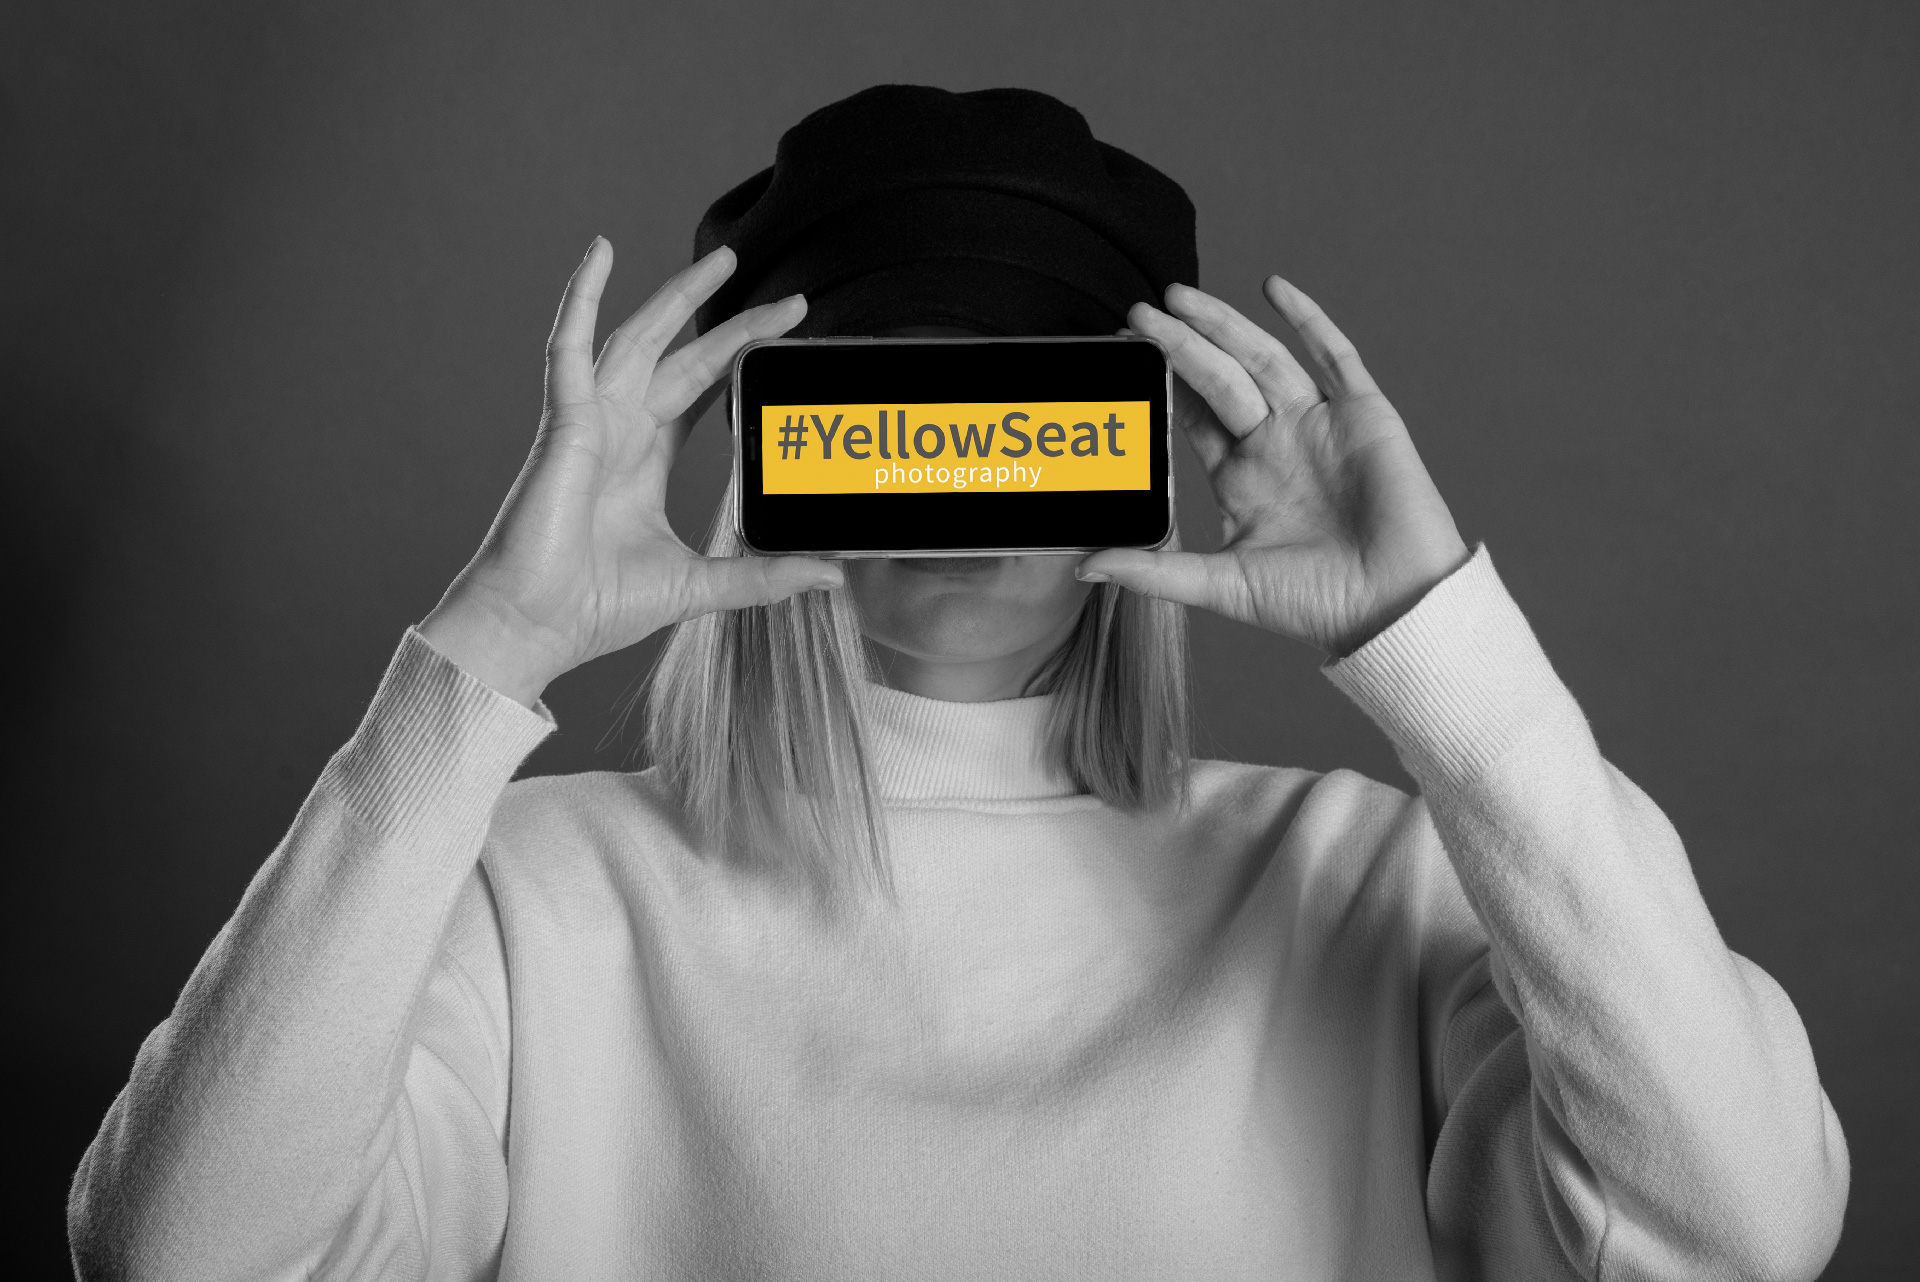 #yellowseat photography